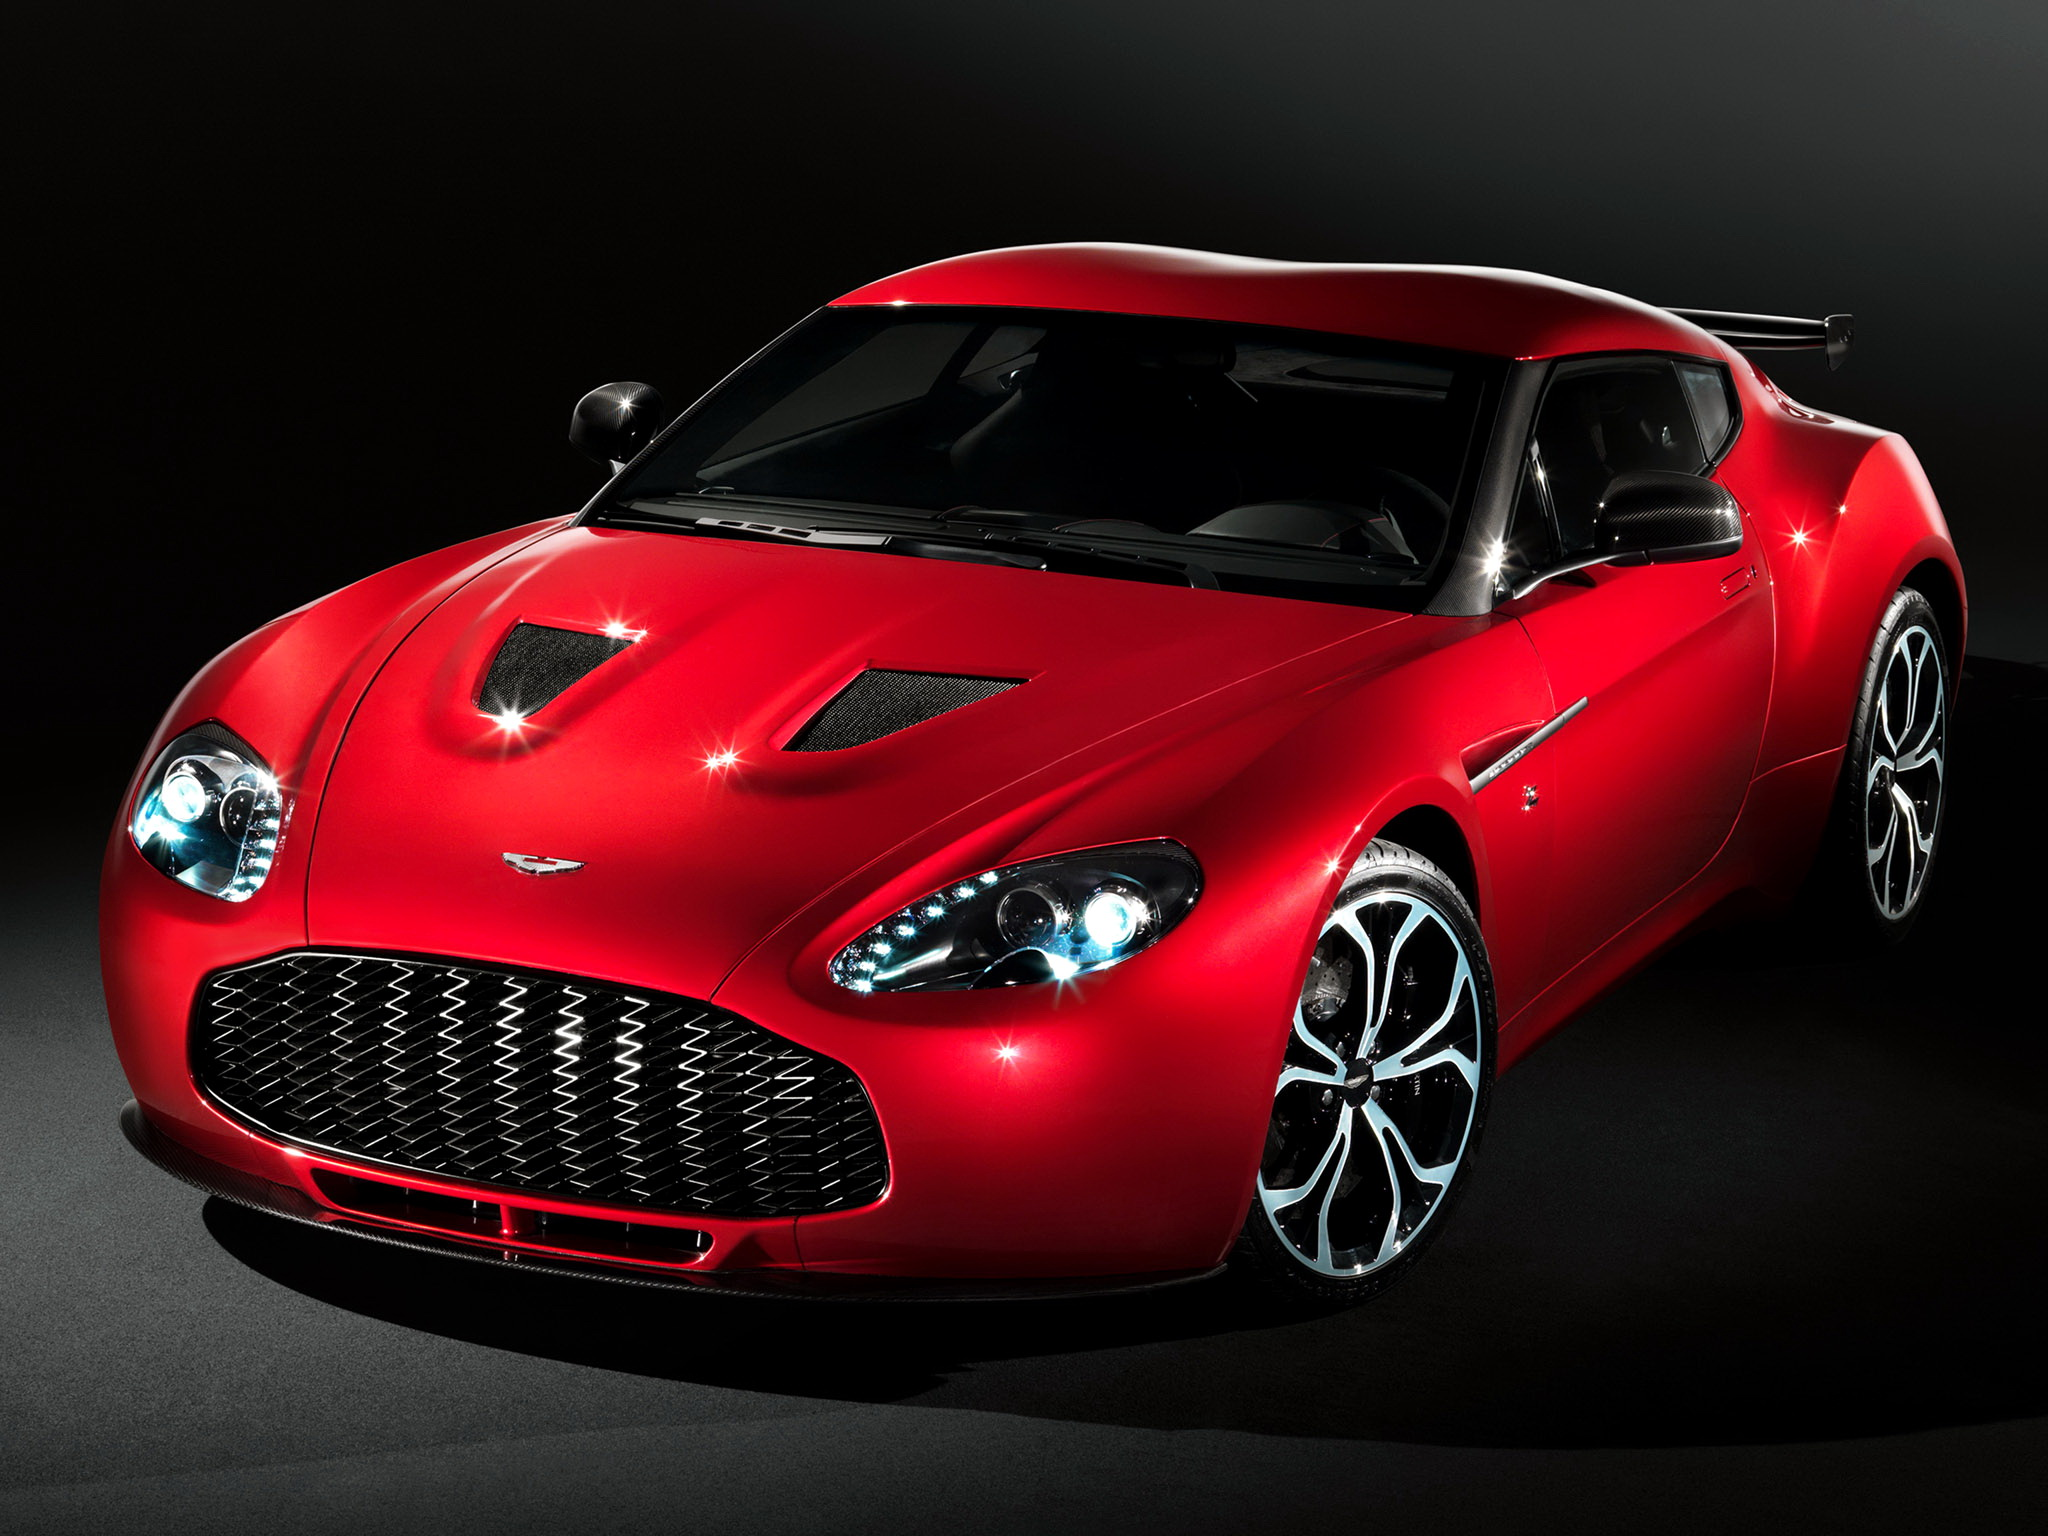 tuning aston martin v12 zagato coupe 2012 , accessories and